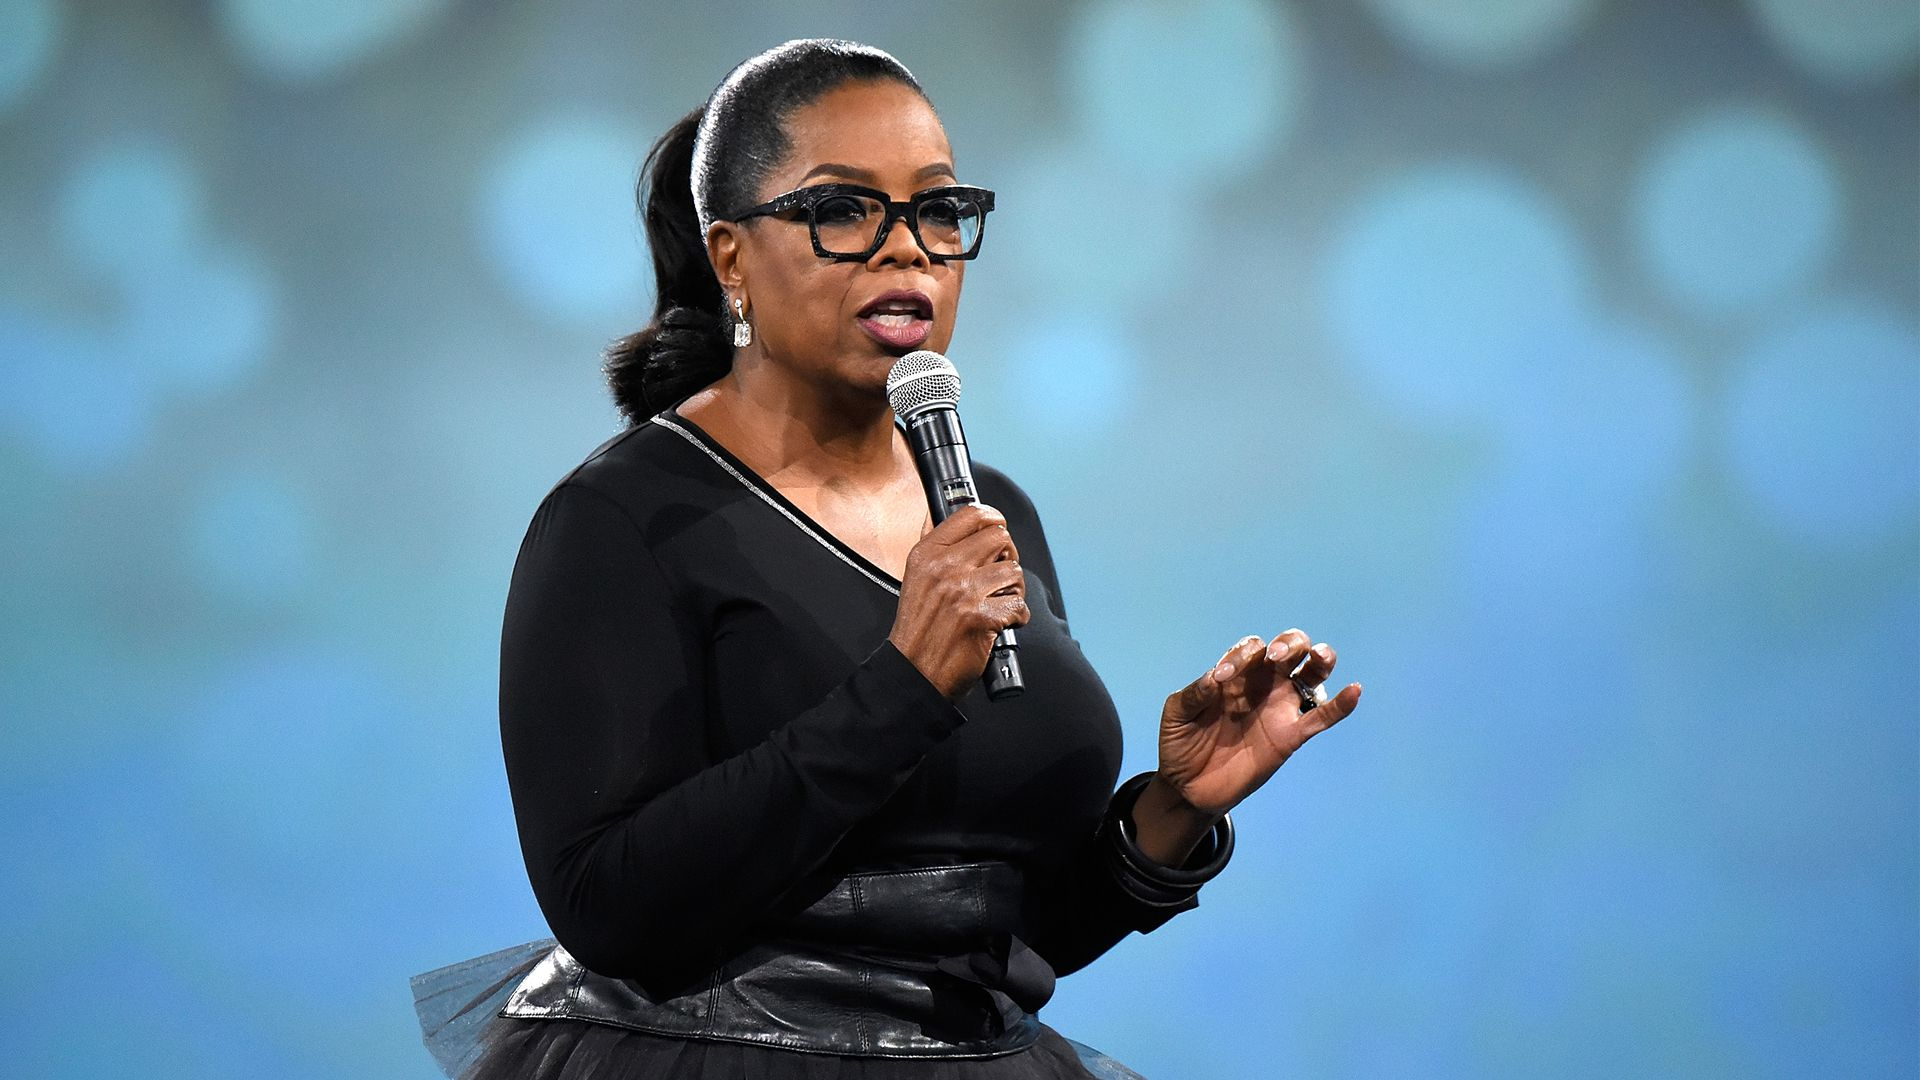 Oprah Winfrey. Photo: Kevin Mazur/Getty Images for Robin Hood